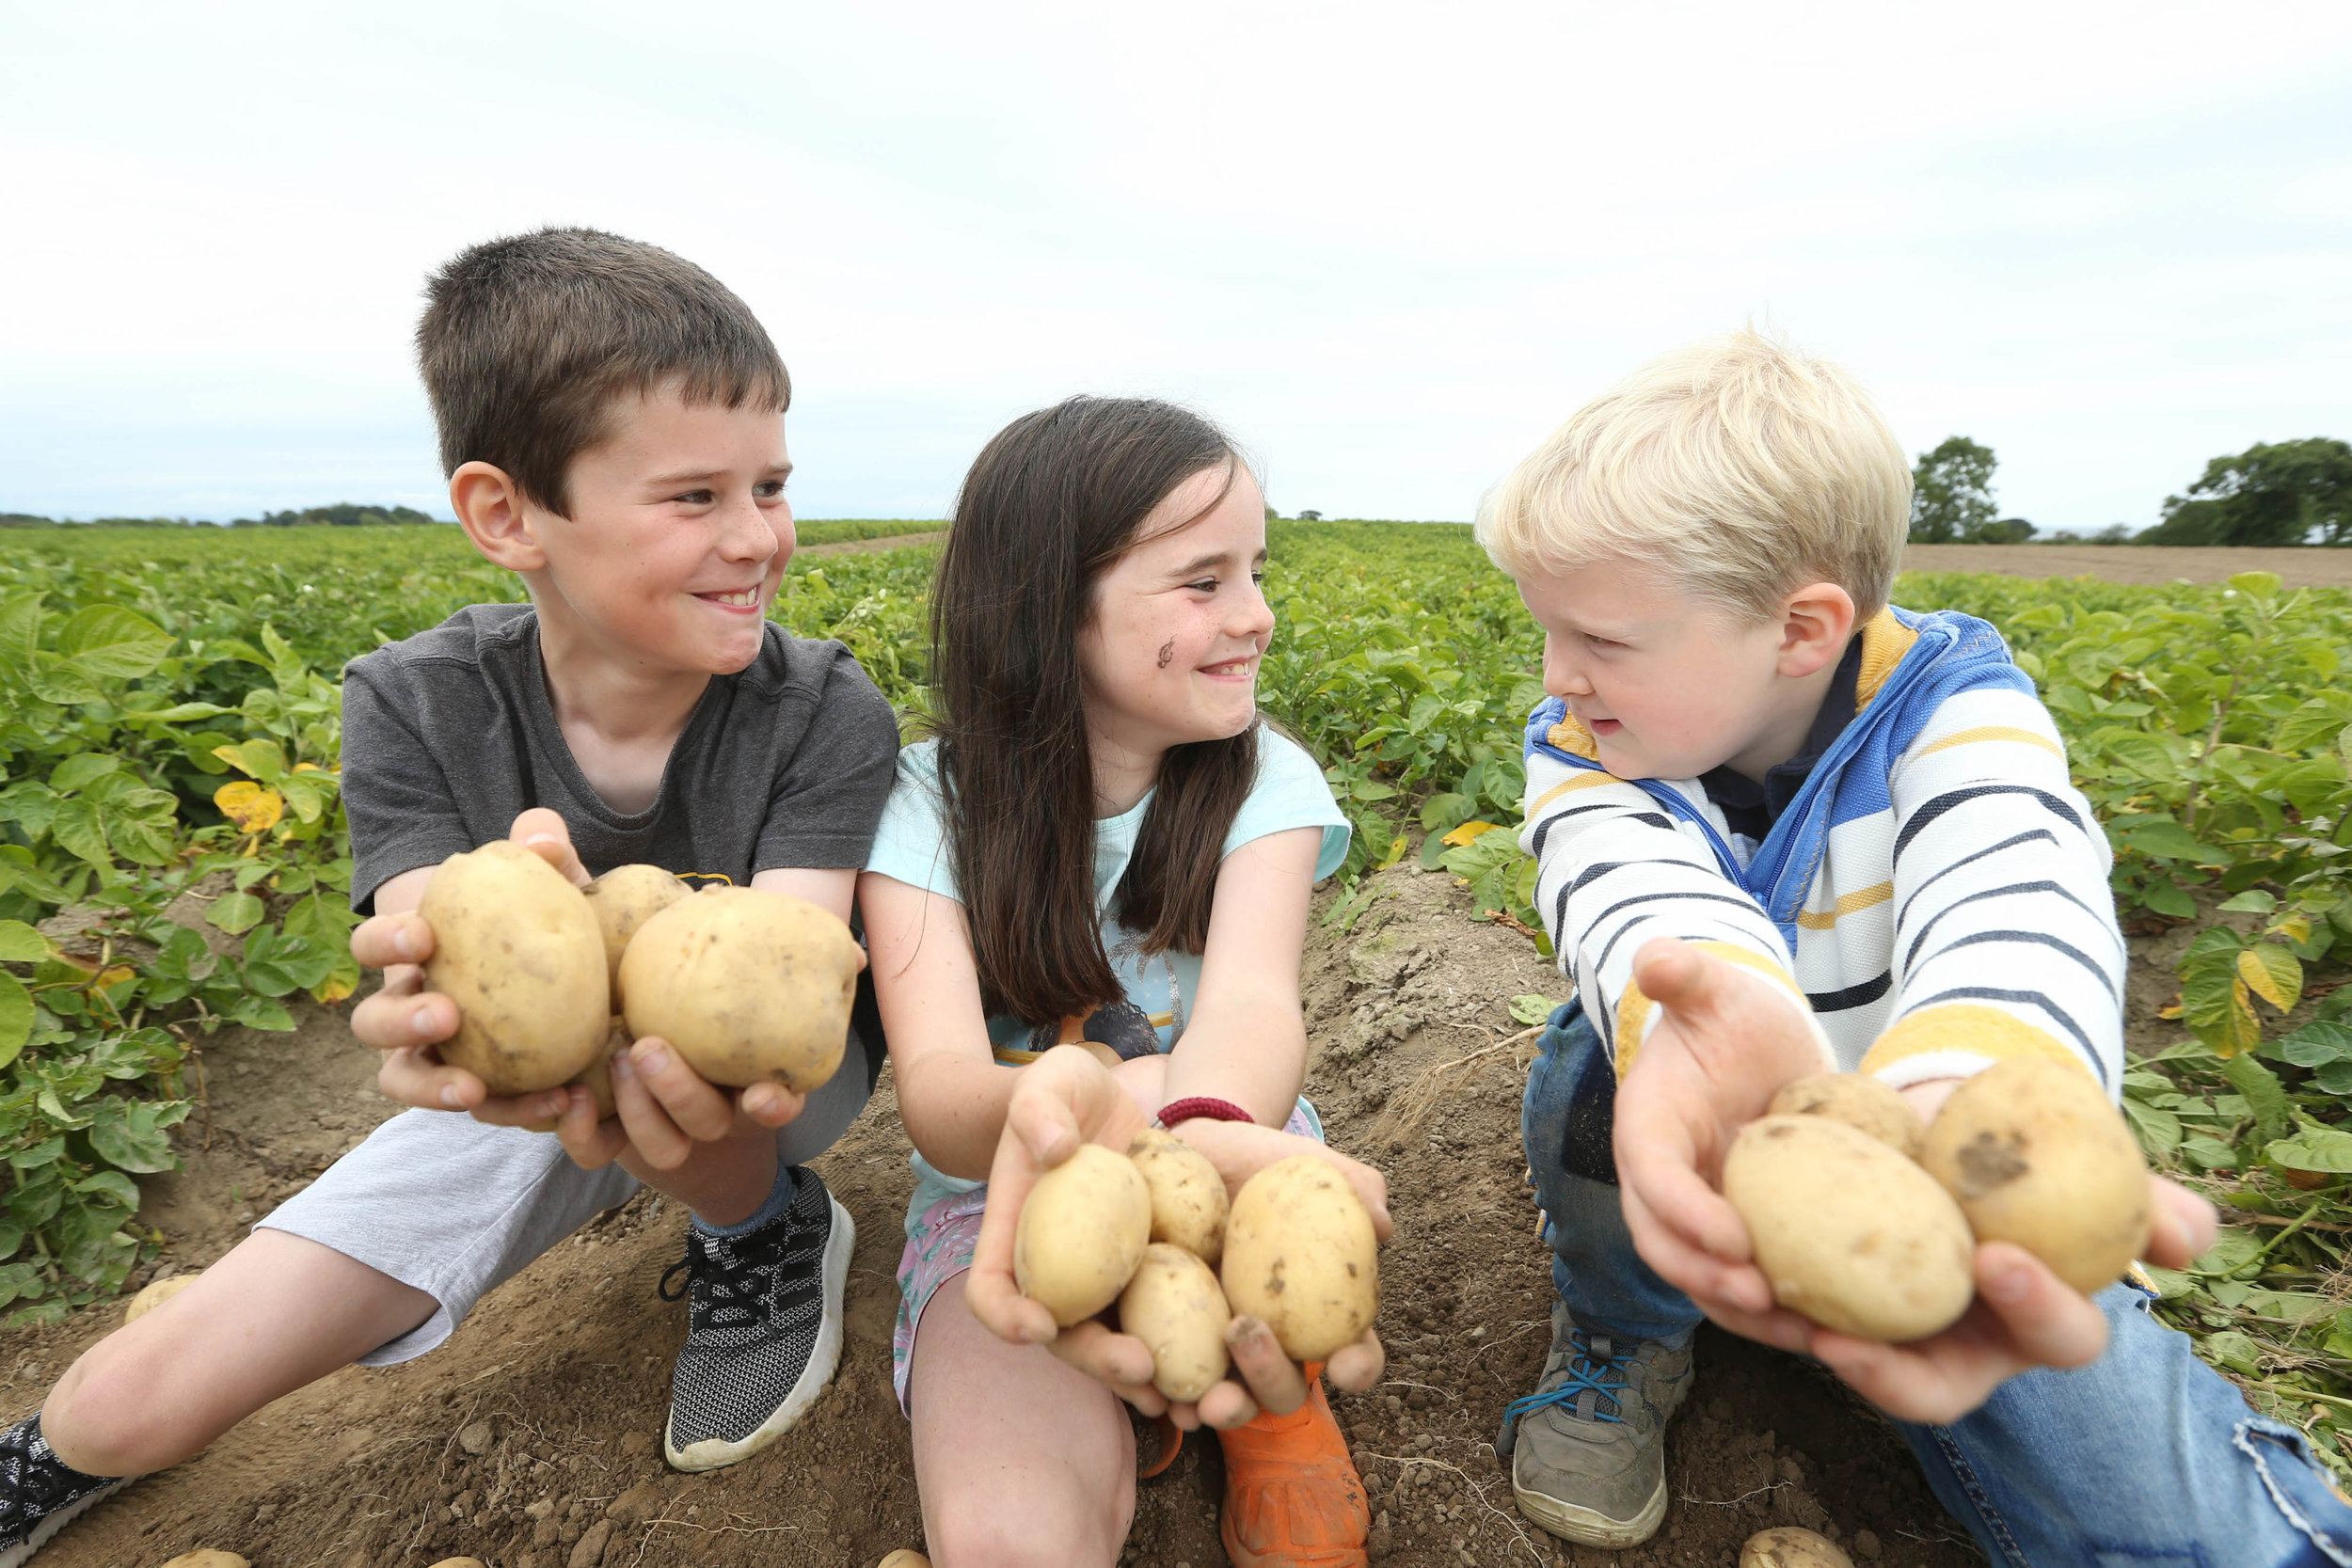 (l-r) Twins Evan and Abbie Wogan (8) with friend David Tuite (8) on the Tuite family farm in Clogherhead, Co. Louth